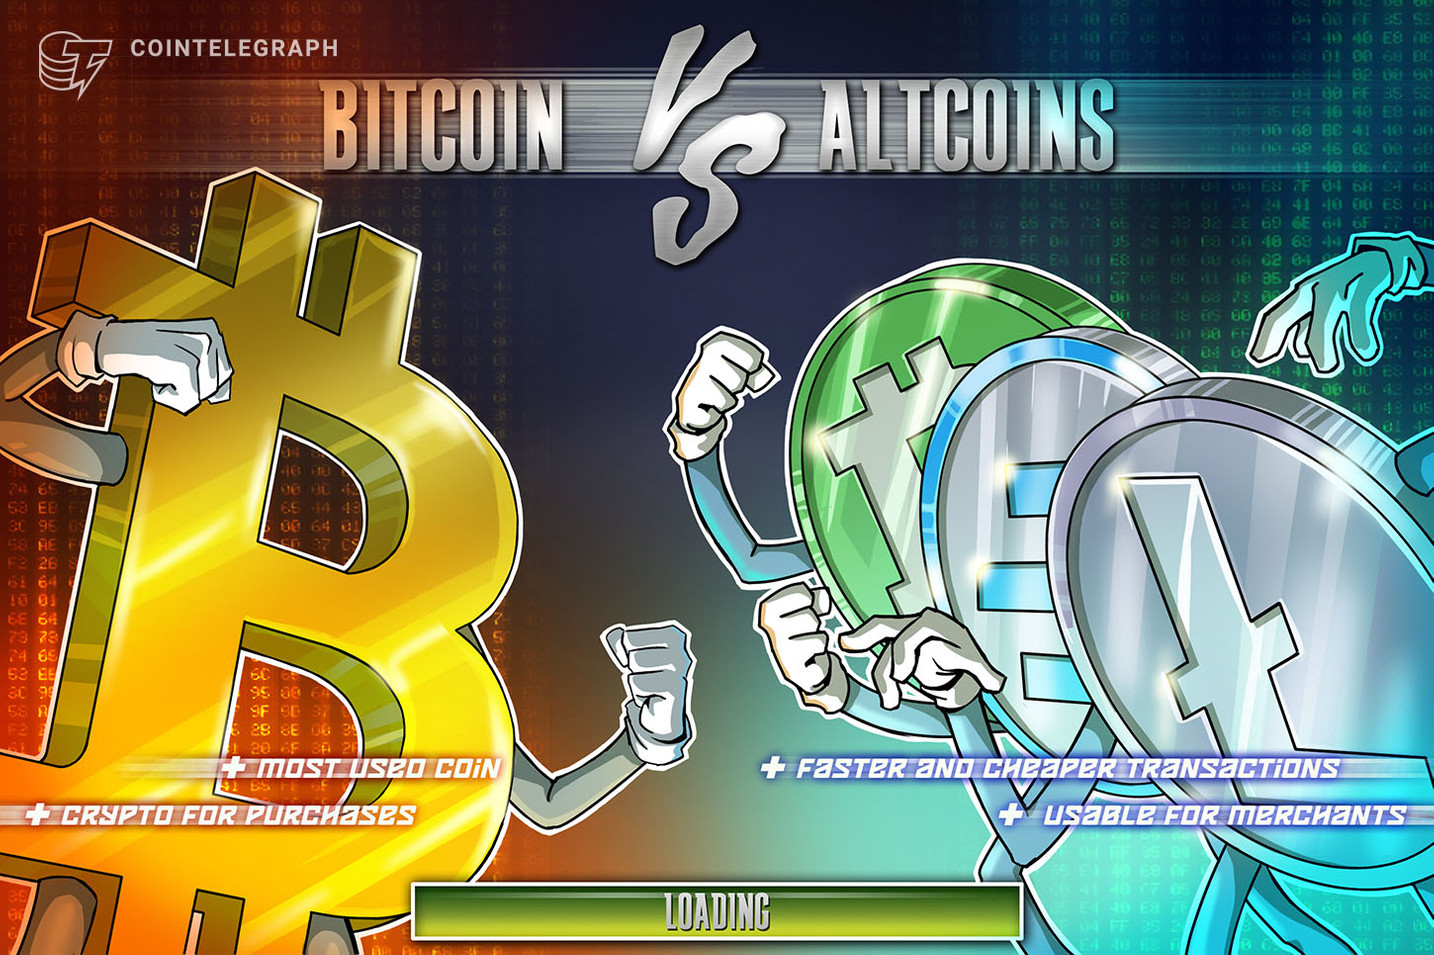 Max Keiser Predicts Bitcoin Dominance, Death of Altcoins and Hard Forks